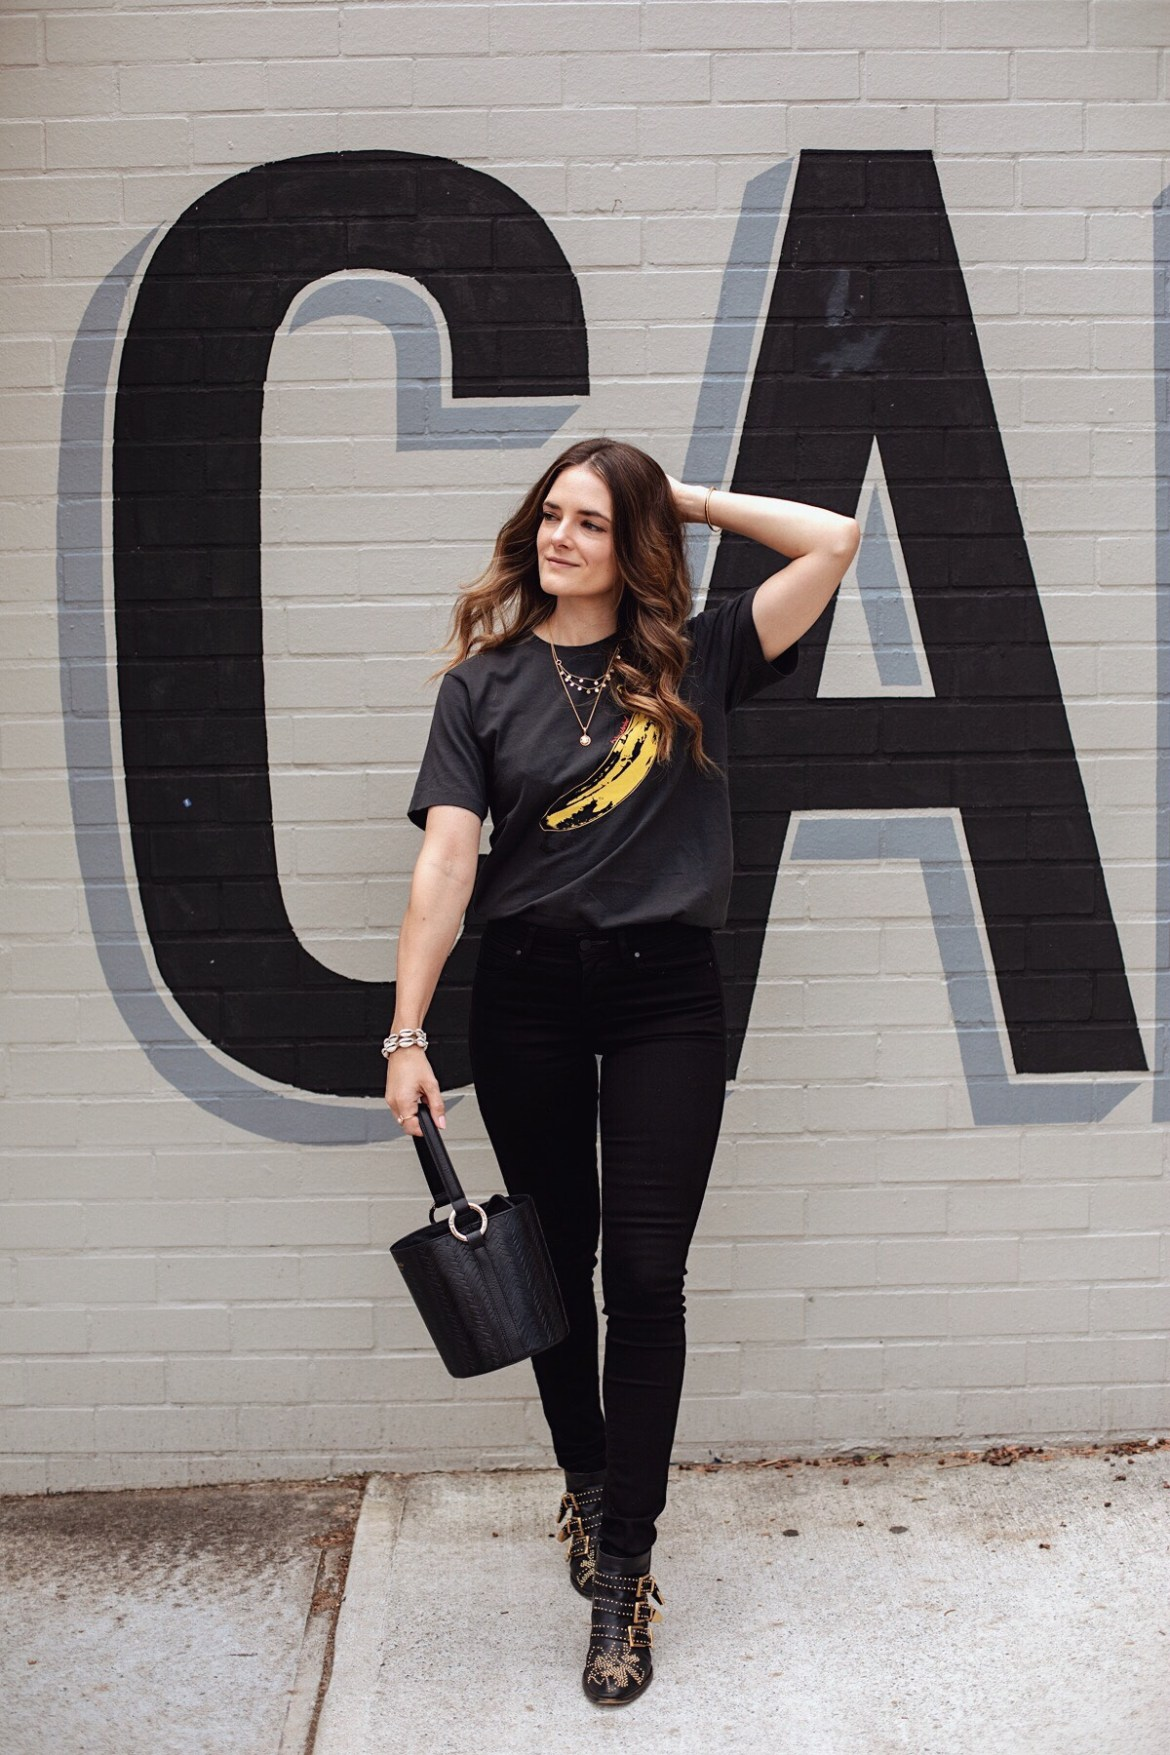 Uniqlo graphic t-shirt UT Andy Warhol banana Inspiring Wit blogger Jenelle Witty in the Chloe Susanna studded boots Uniqlo black jeans and Uniqlo SPRZ tee